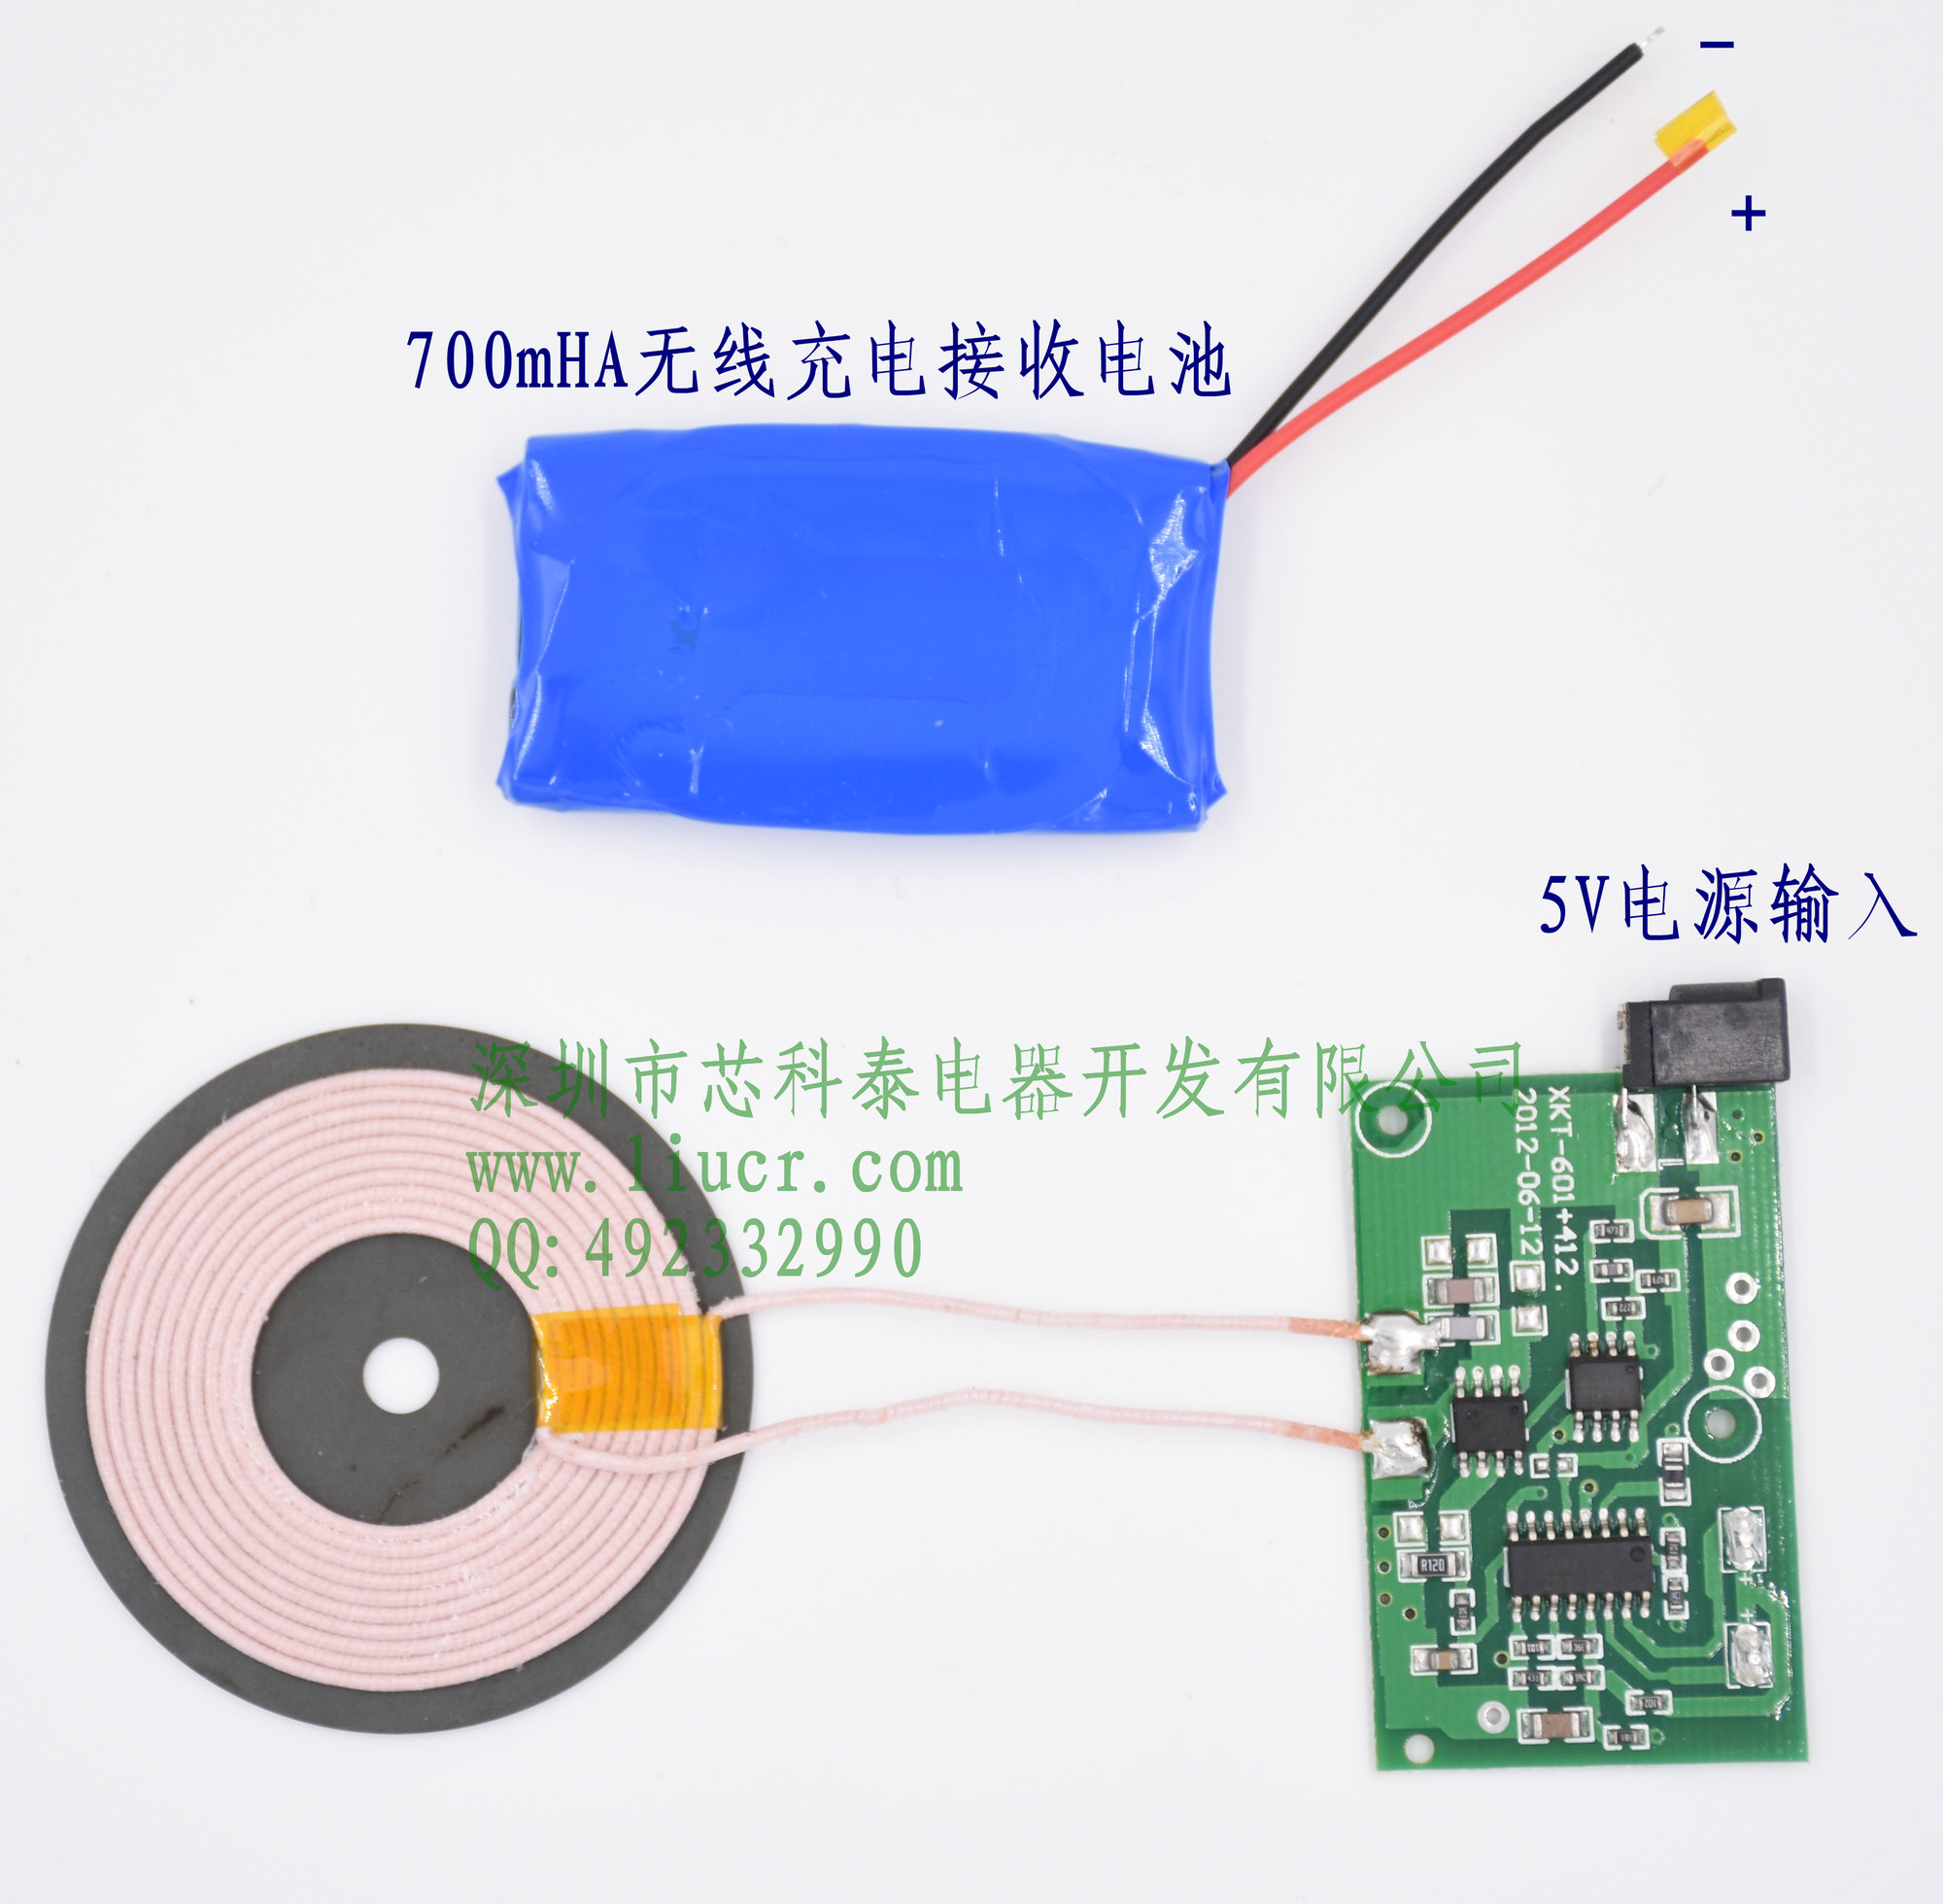 Wireless power supply transmission module set for universal wireless charging battery<br>